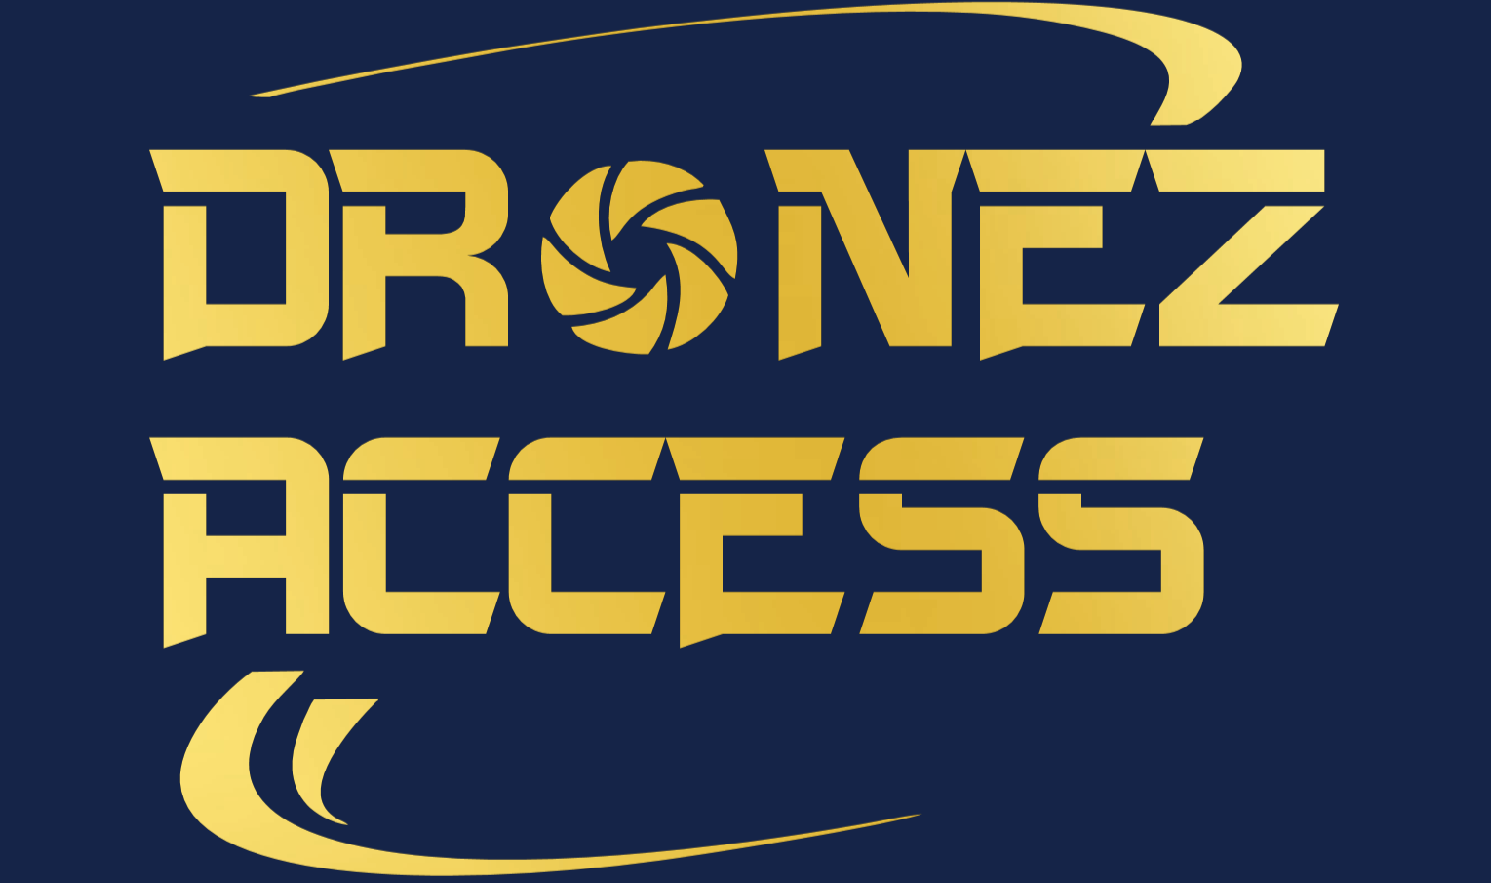 Dronez Access Ltd